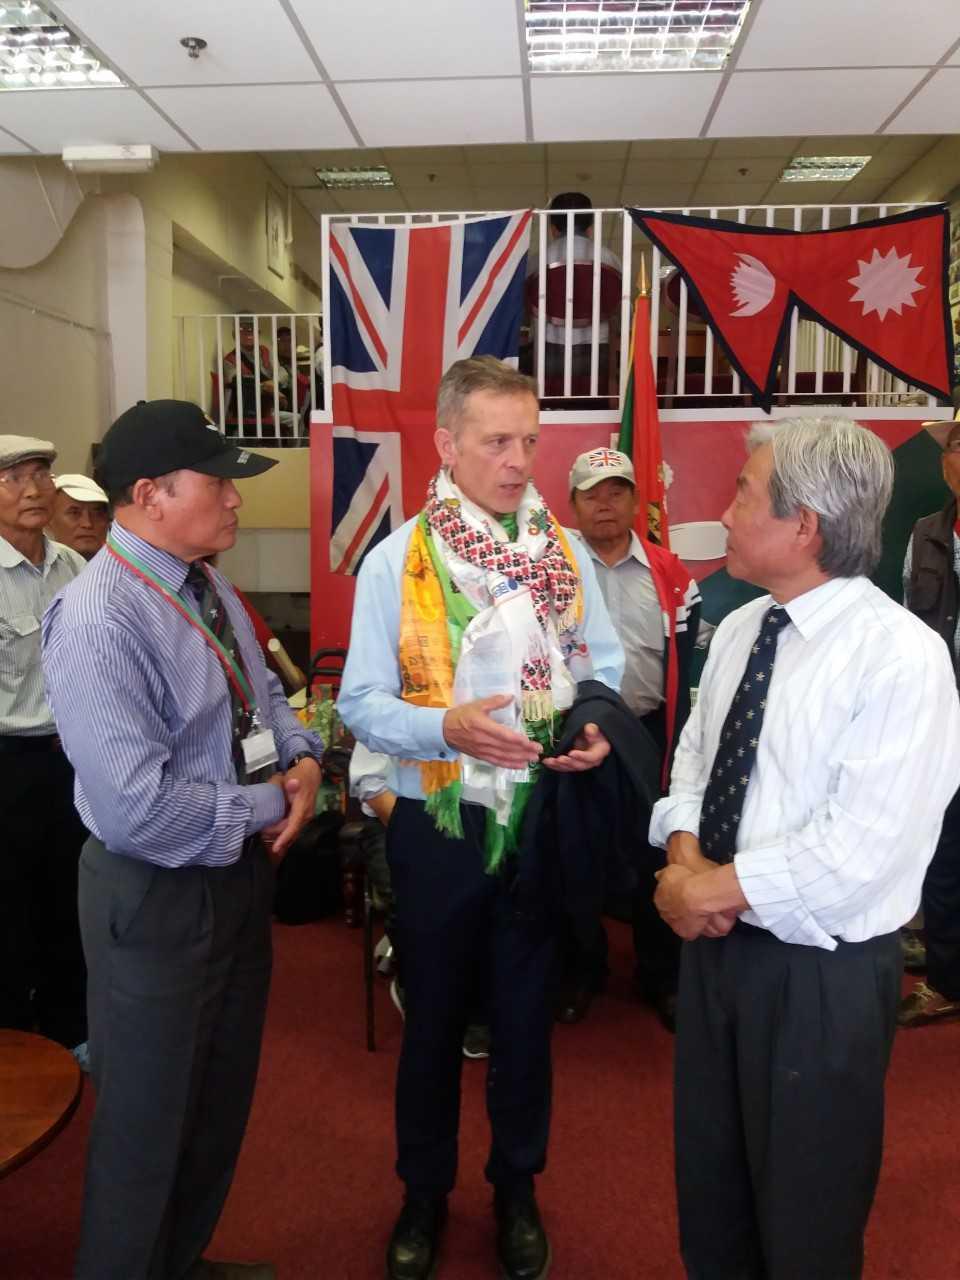 MP gives support to Gurkha community